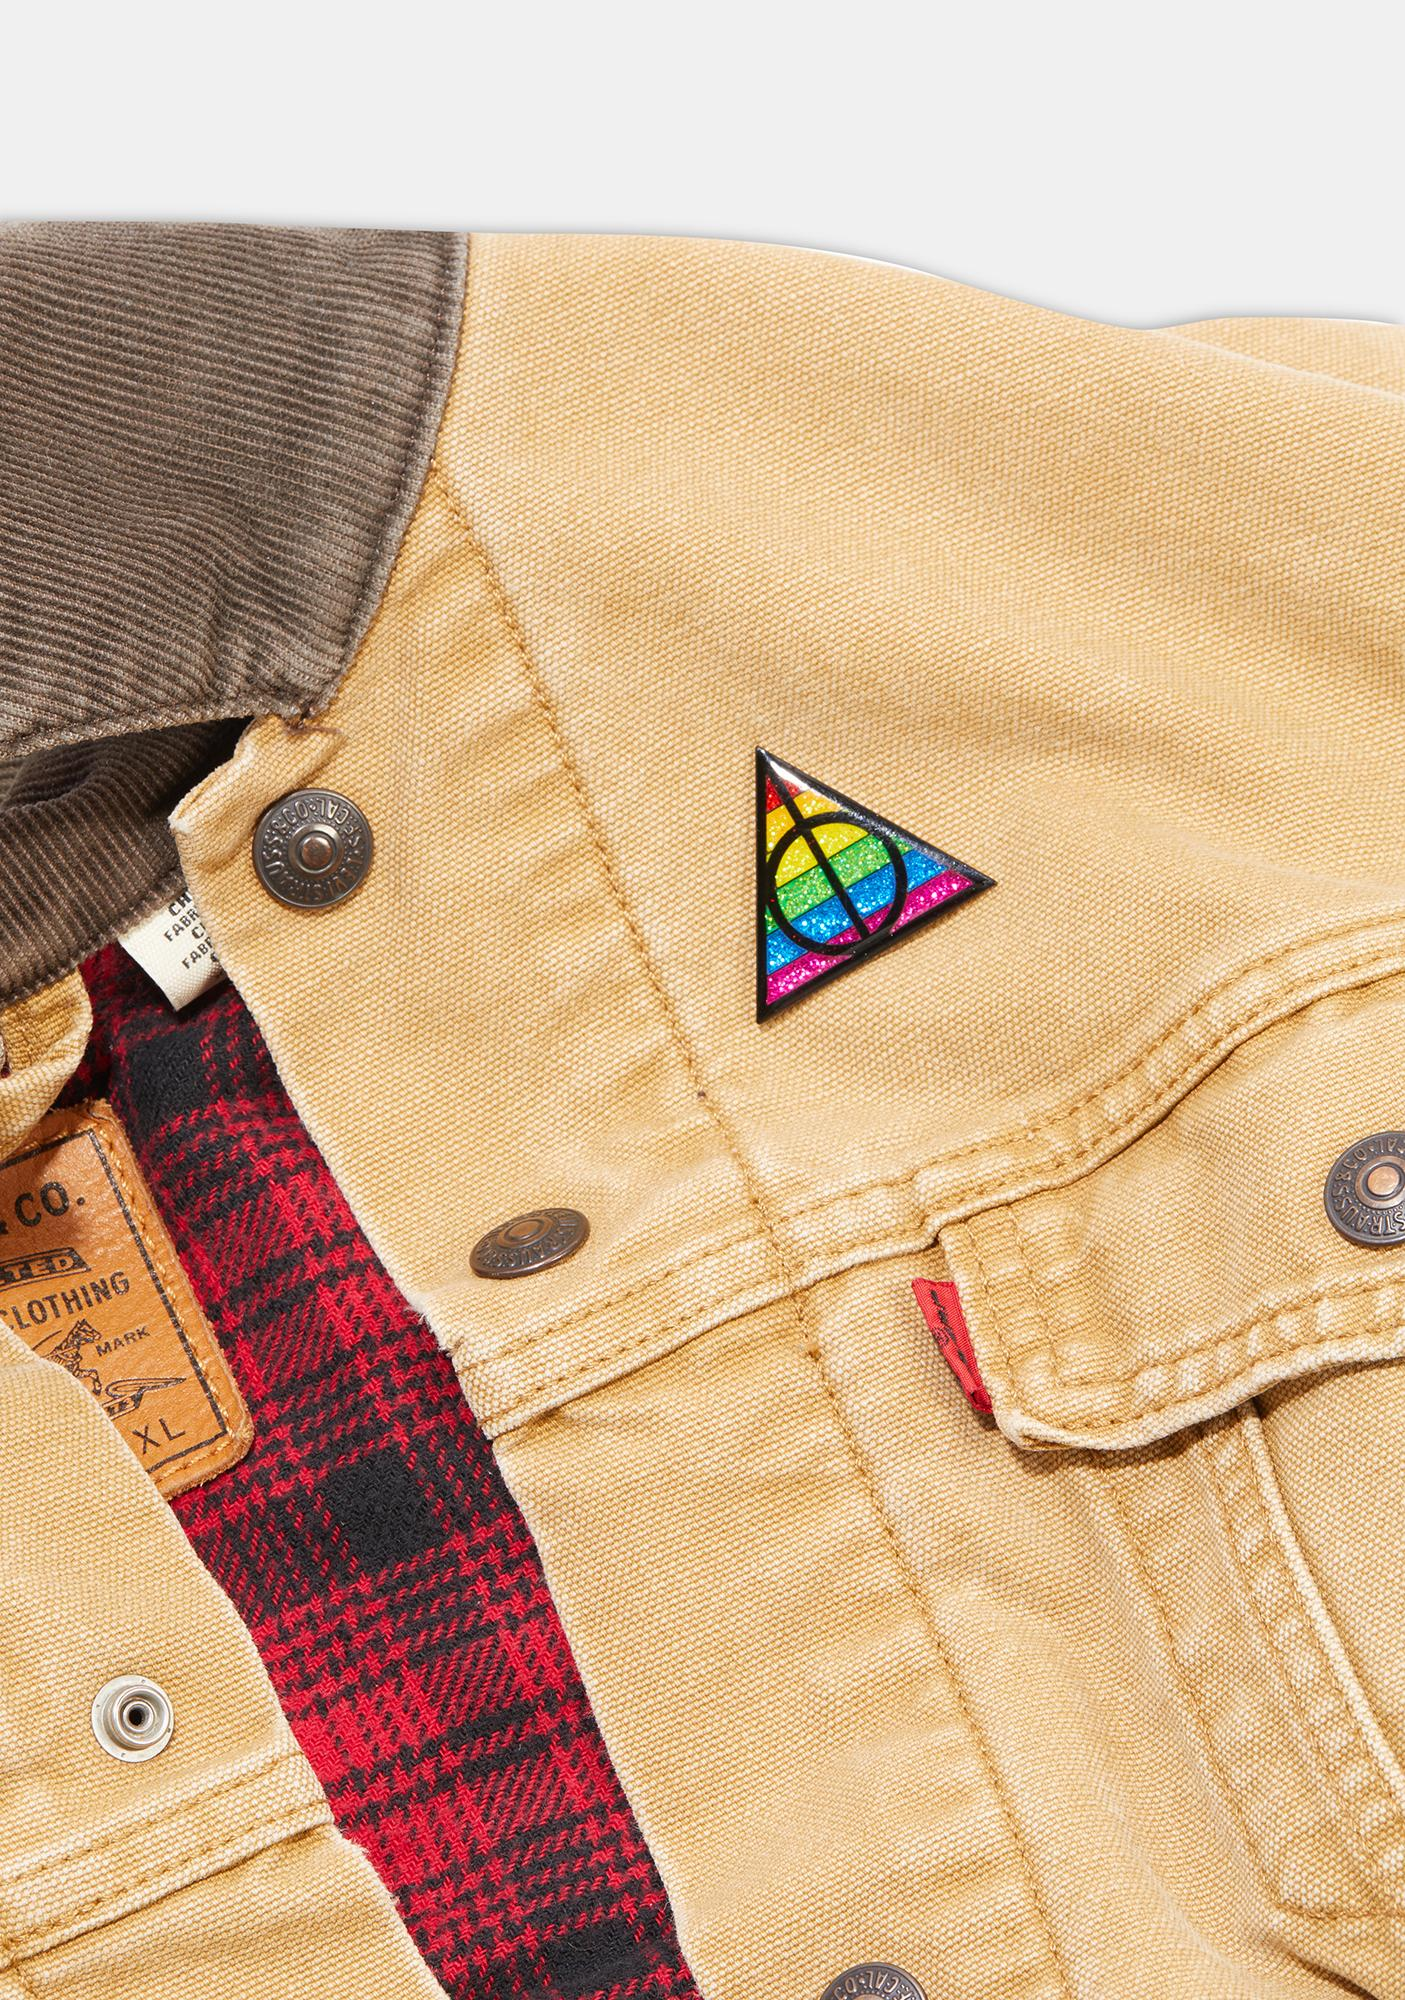 Geeky And Kinky Potter Pride Enamel Pin